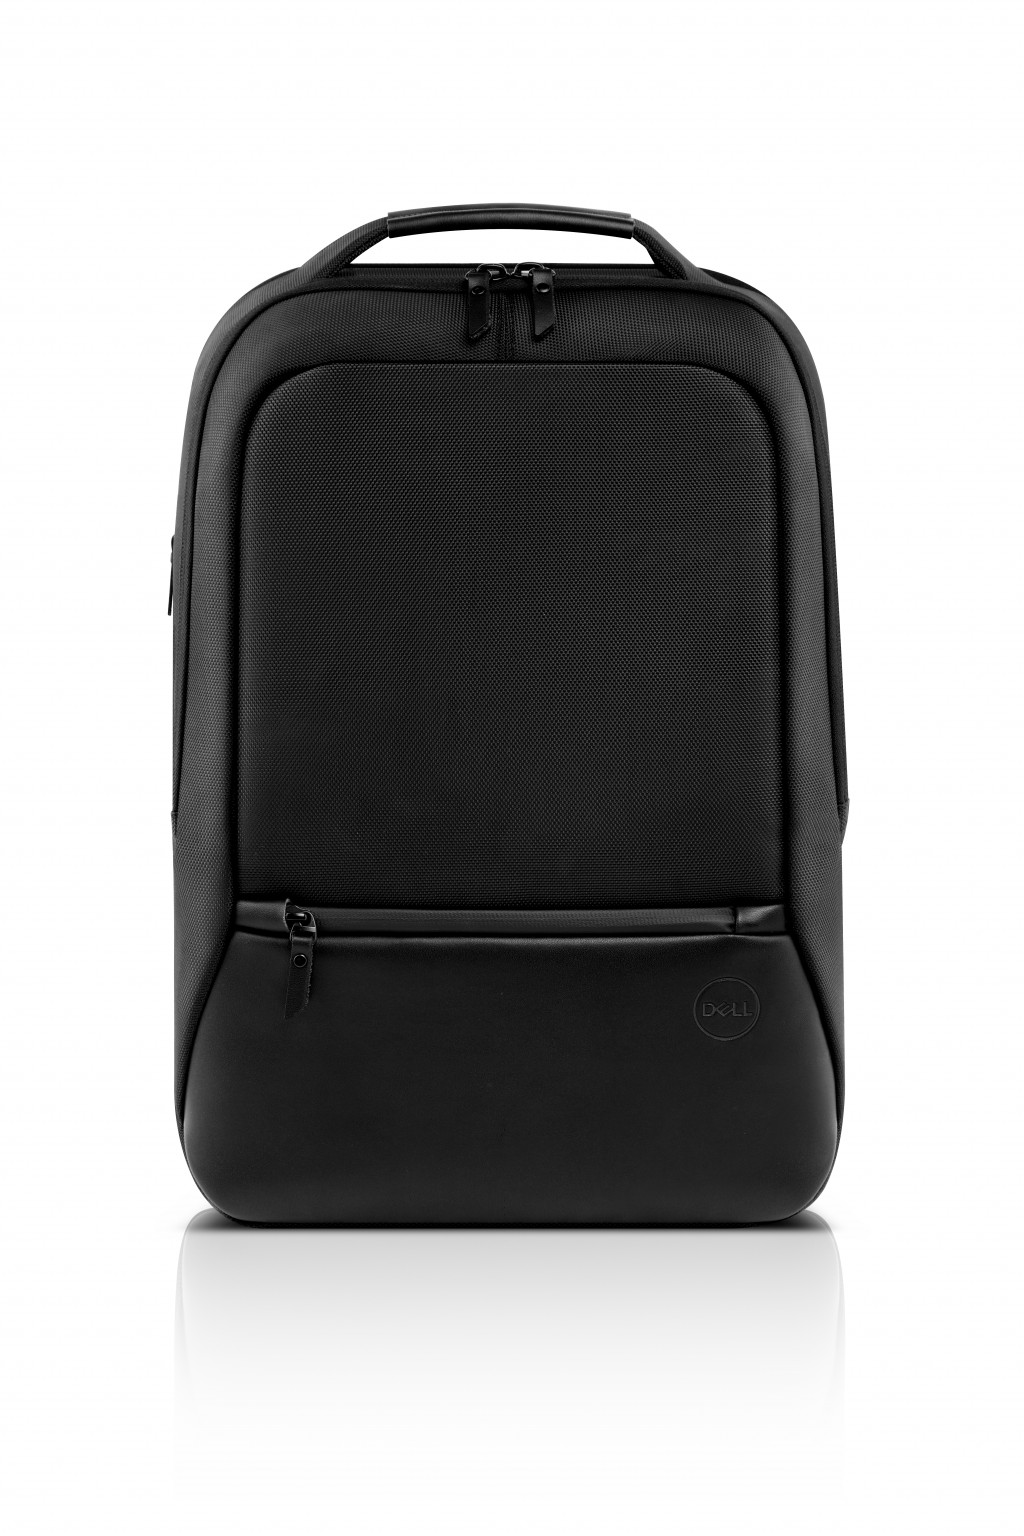 """Dell Premier Slim 460-BCQM Fits up to size 15 """", Black with metal logo, Backpack"""